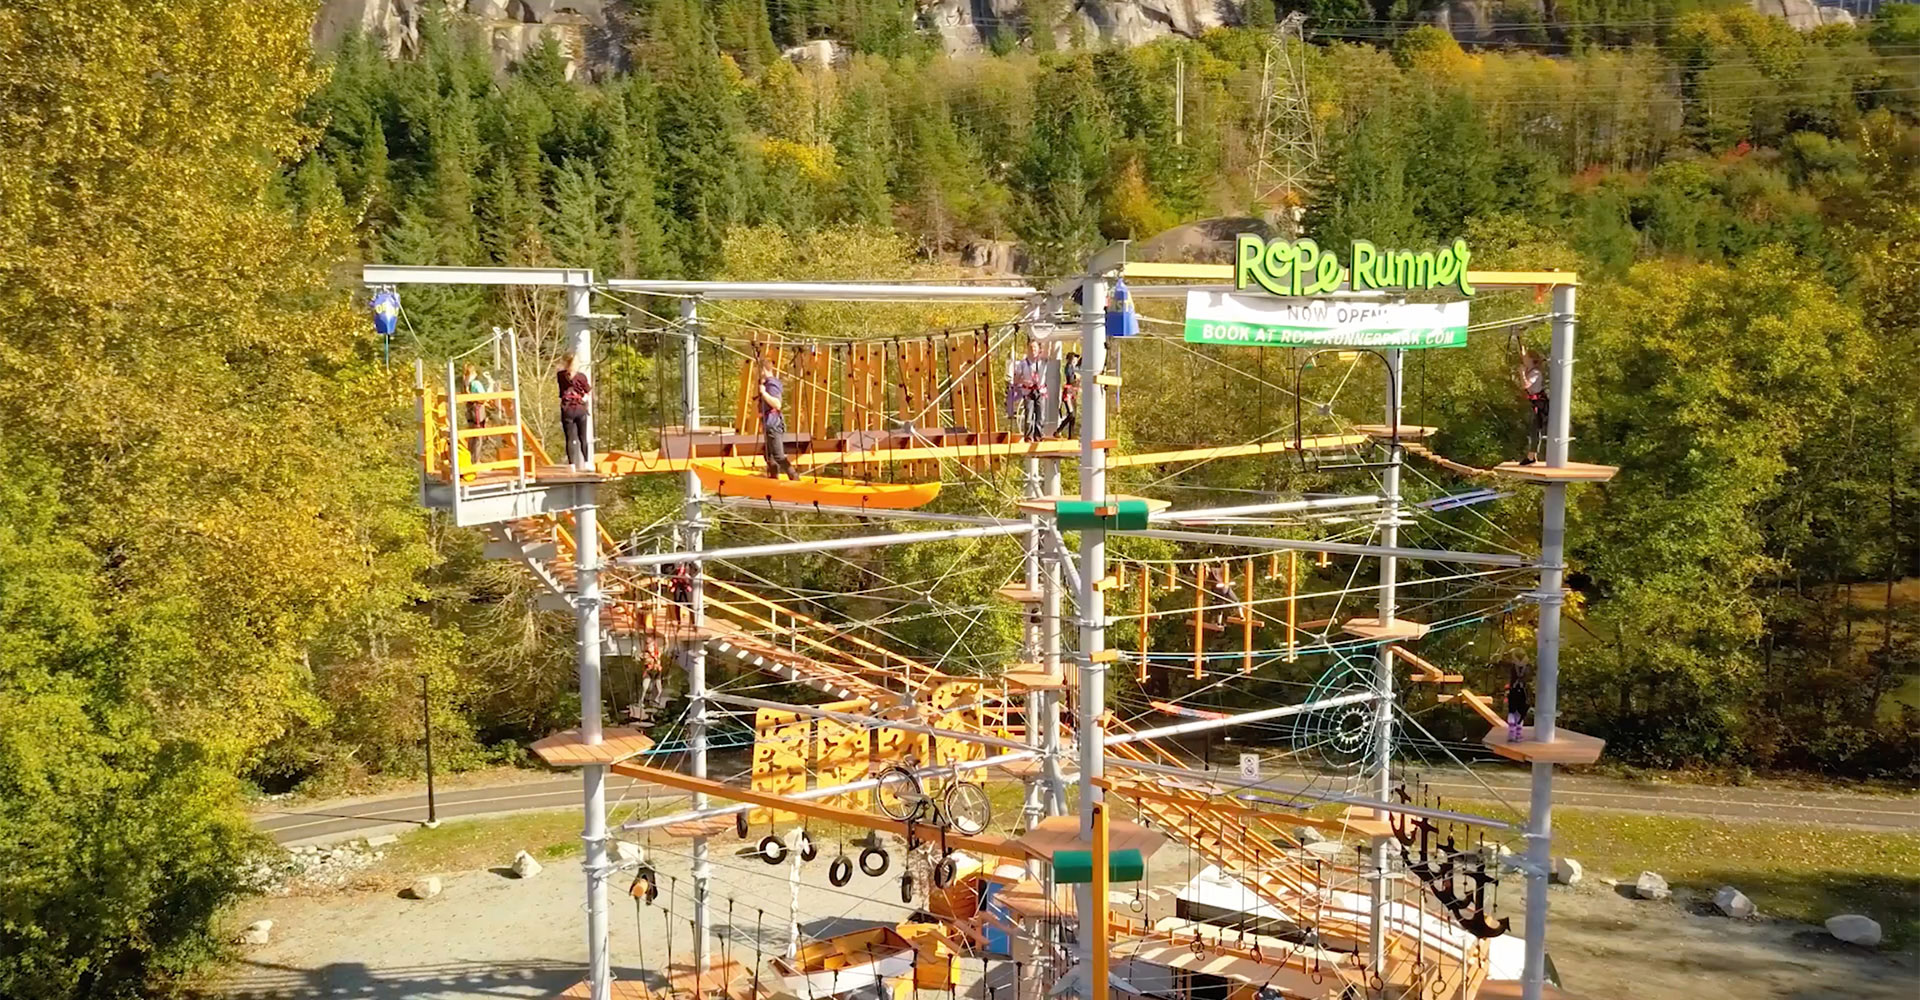 rope runner aerial park squamish homepage video cover